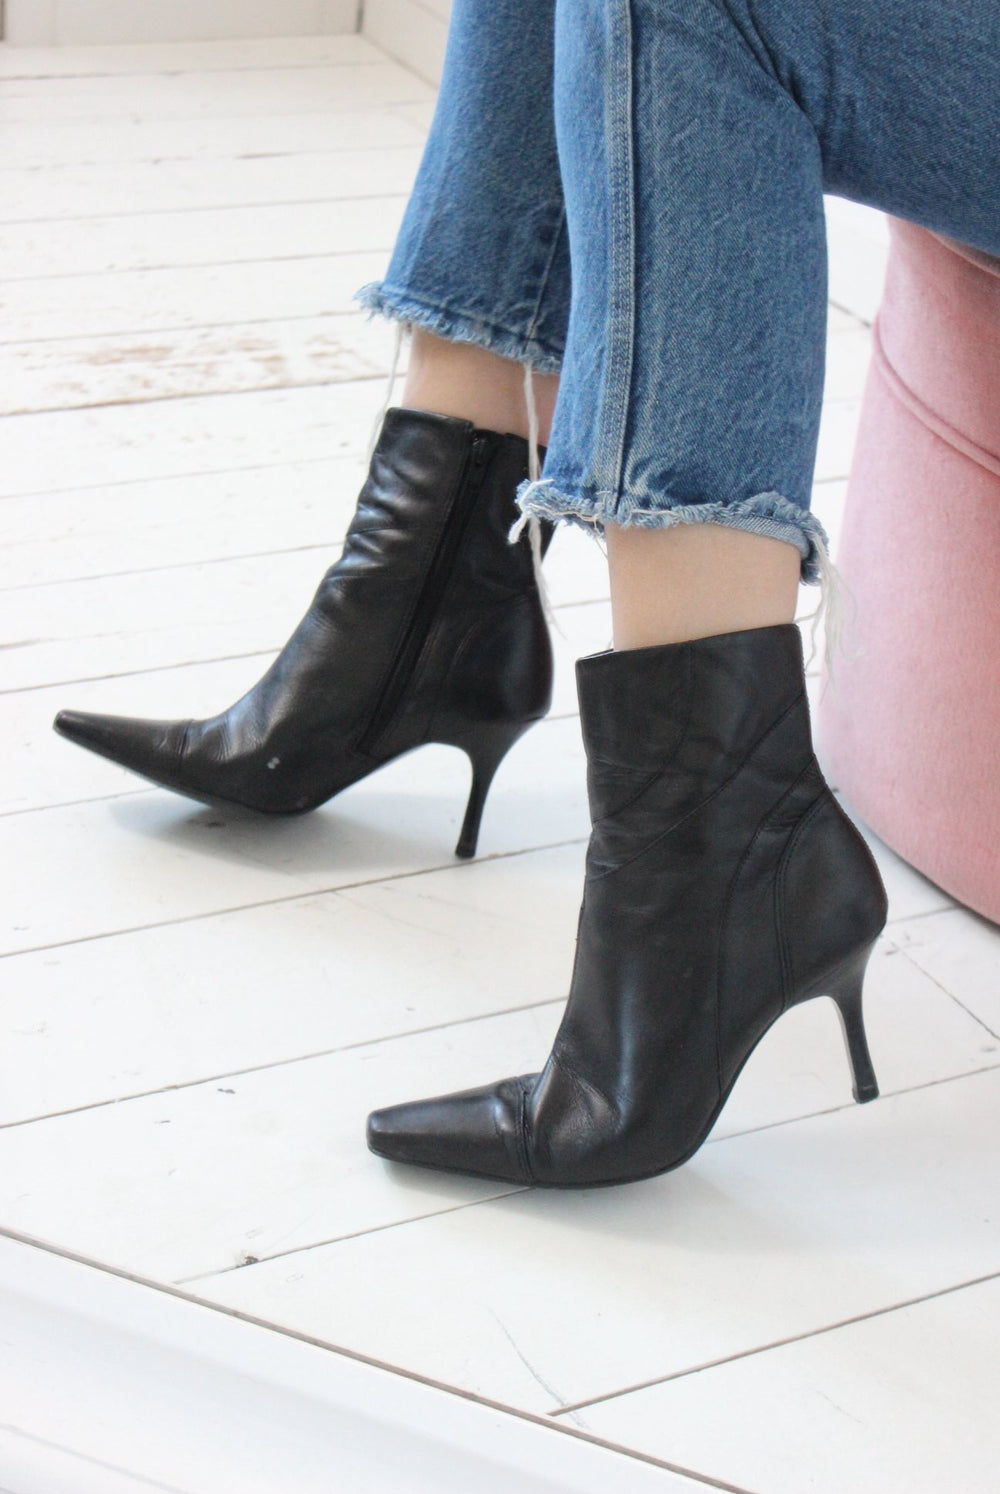 262c791e2cb86 Vintage 90s Black Leather Mid Stiletto Heeled Ankle Boots